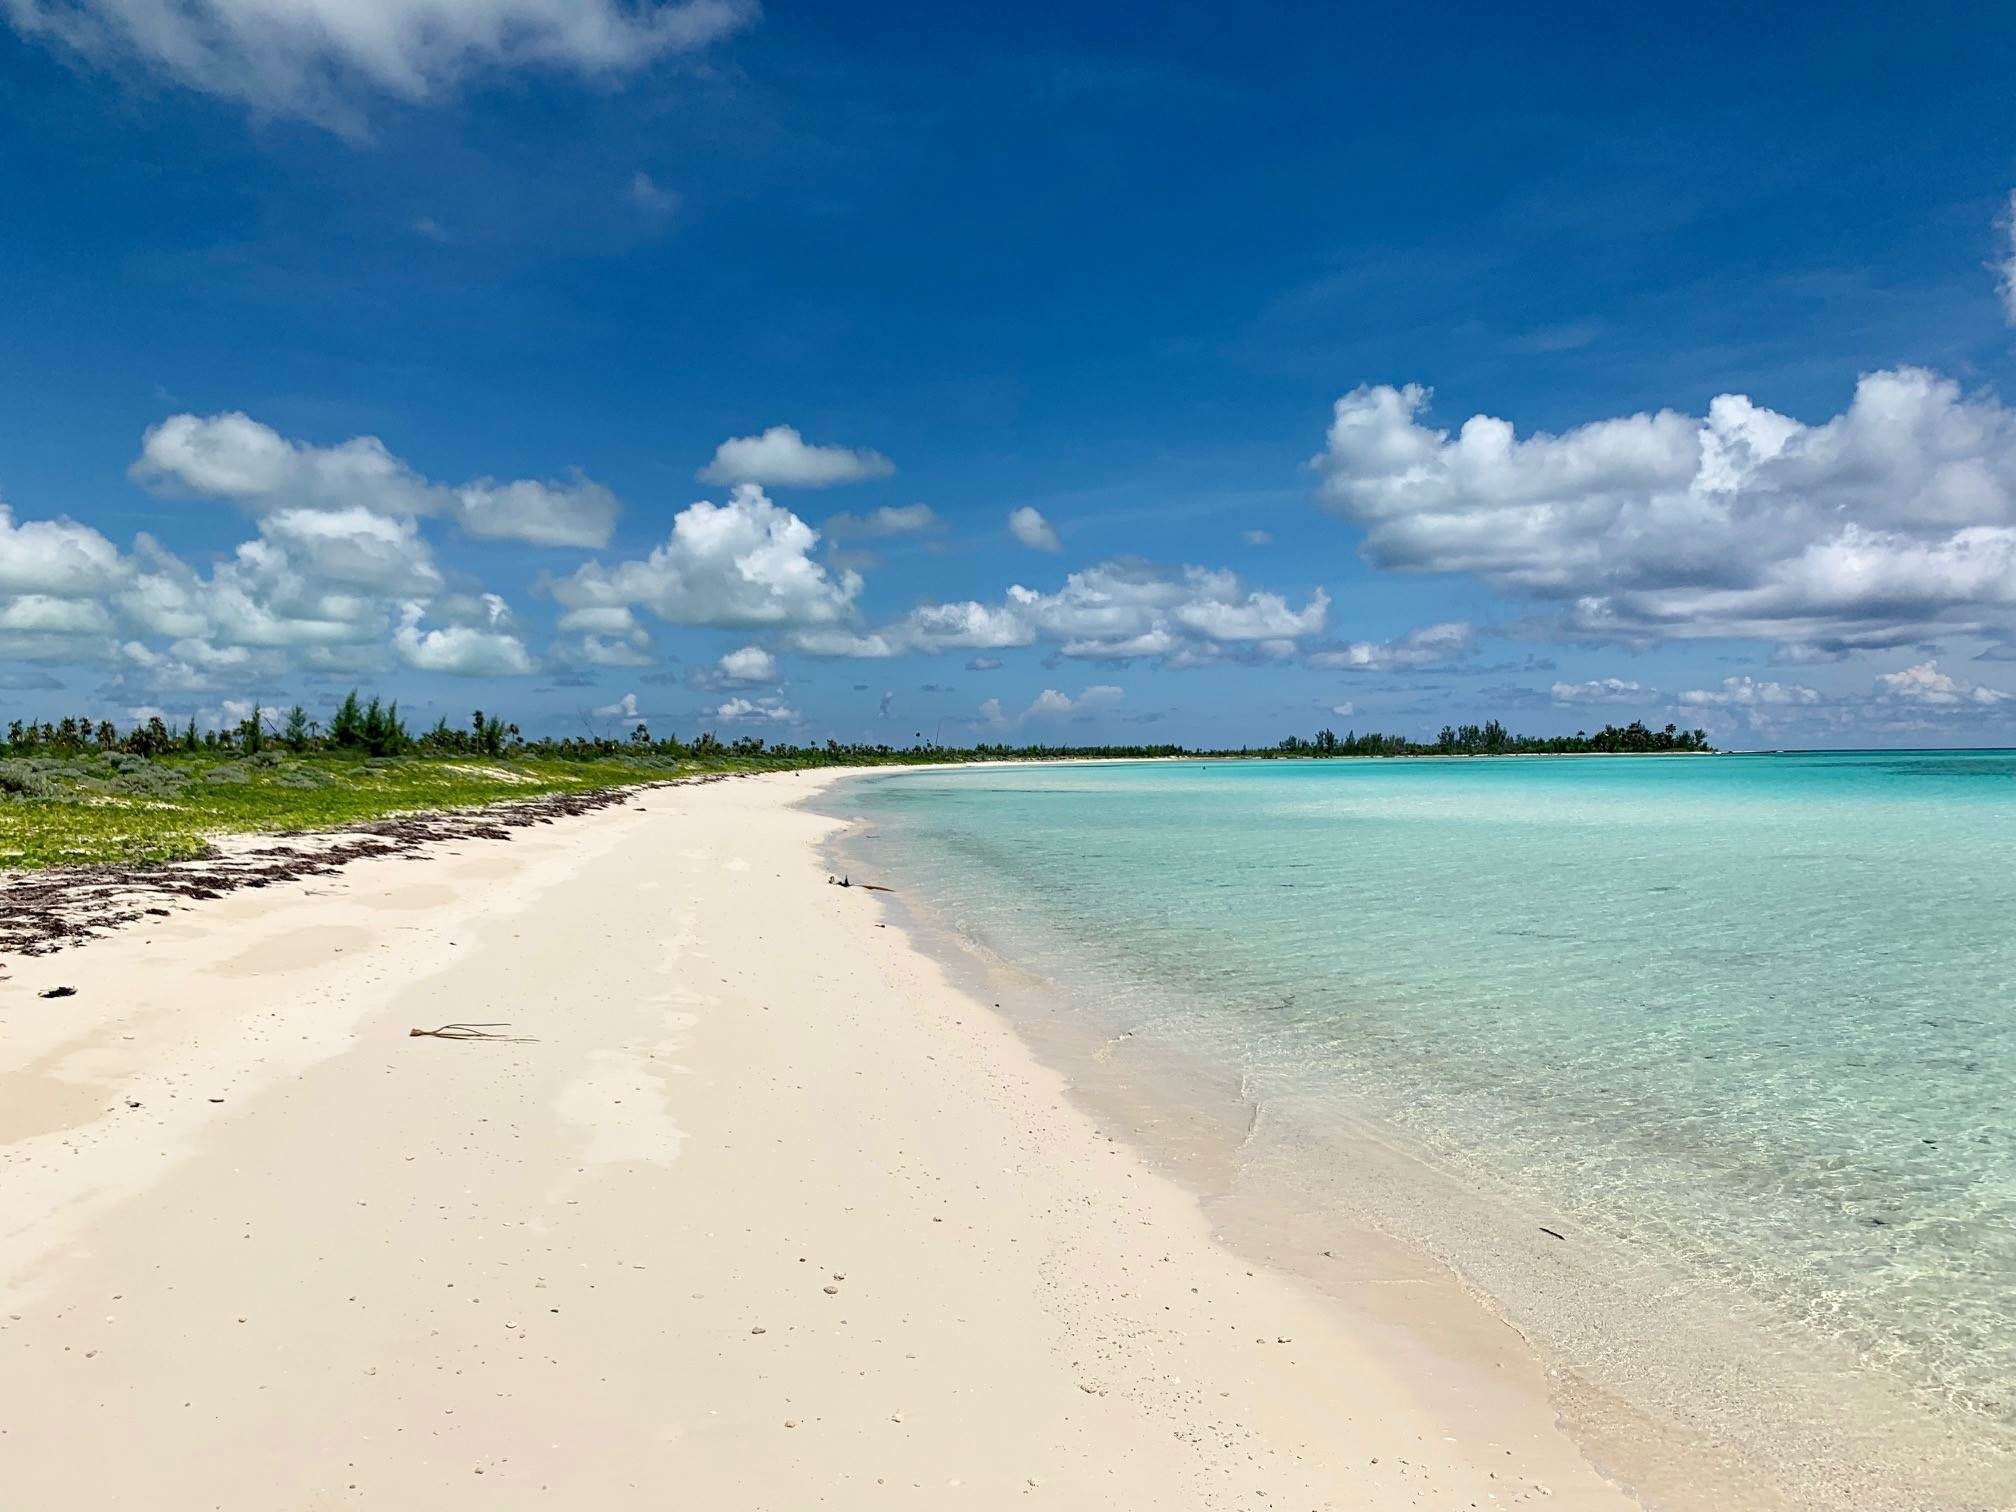 2. Land for Sale at Lot 29 Chub Cay - MLS 38796 Chub Cay, Berry Islands, Bahamas